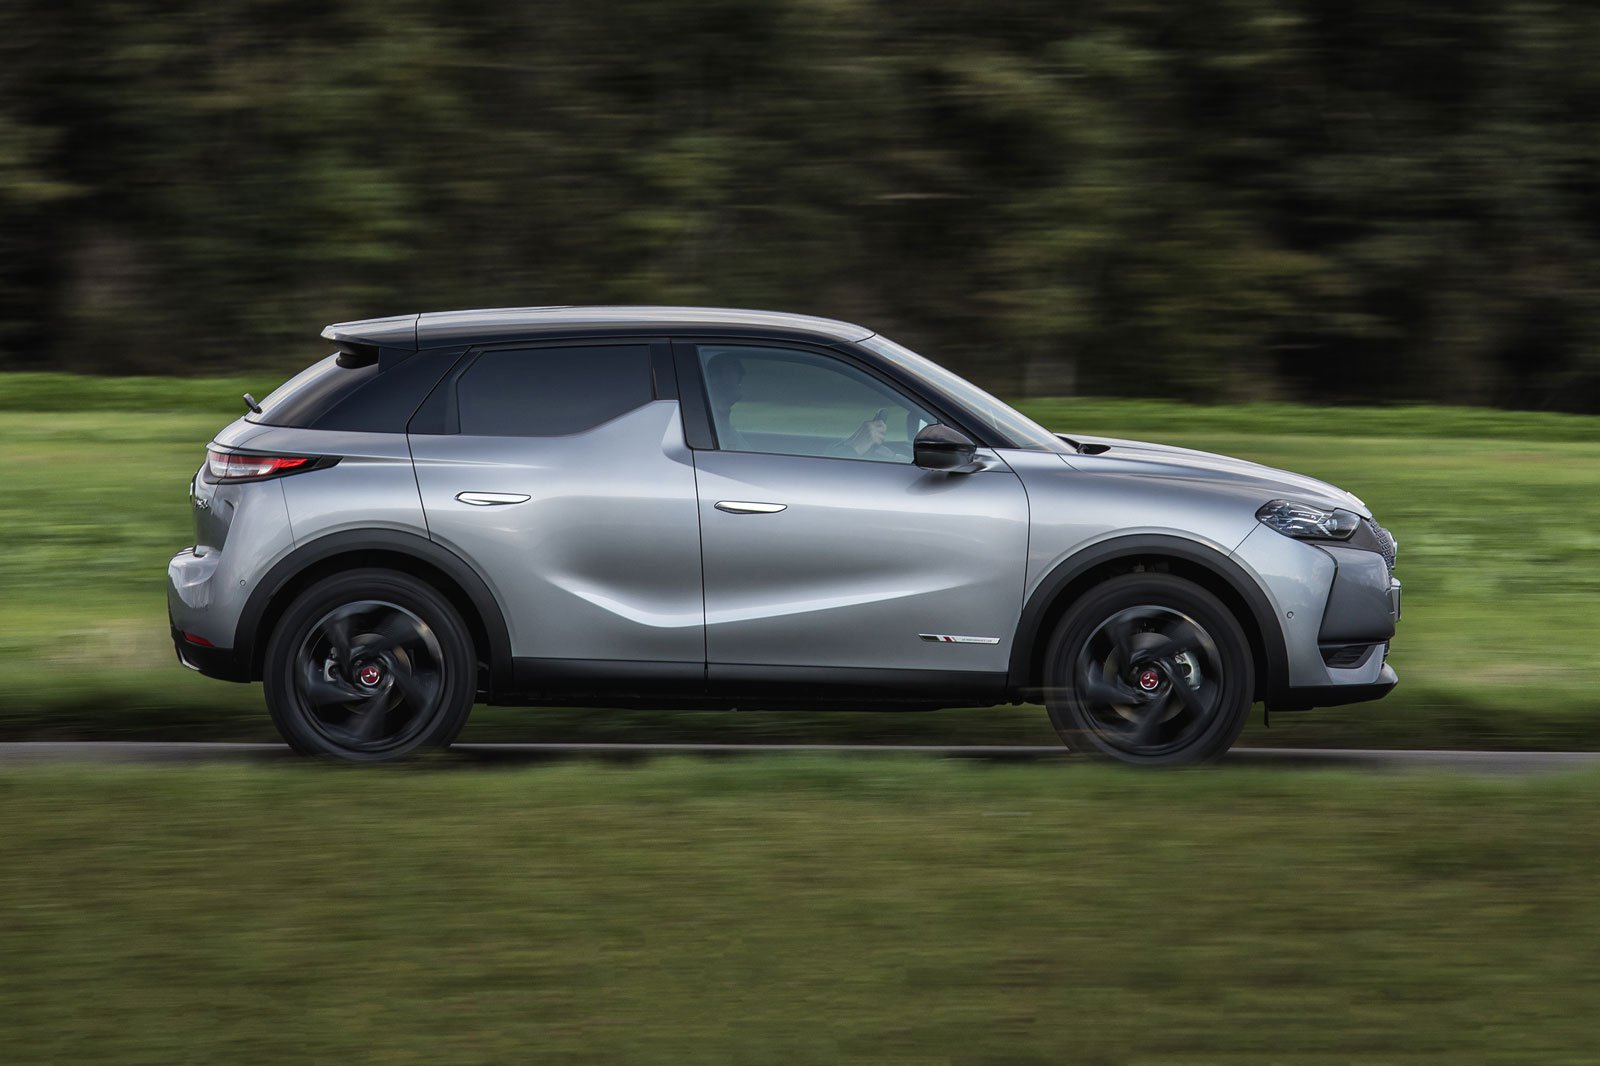 2019 DS 3 Crossback silver driving side profile